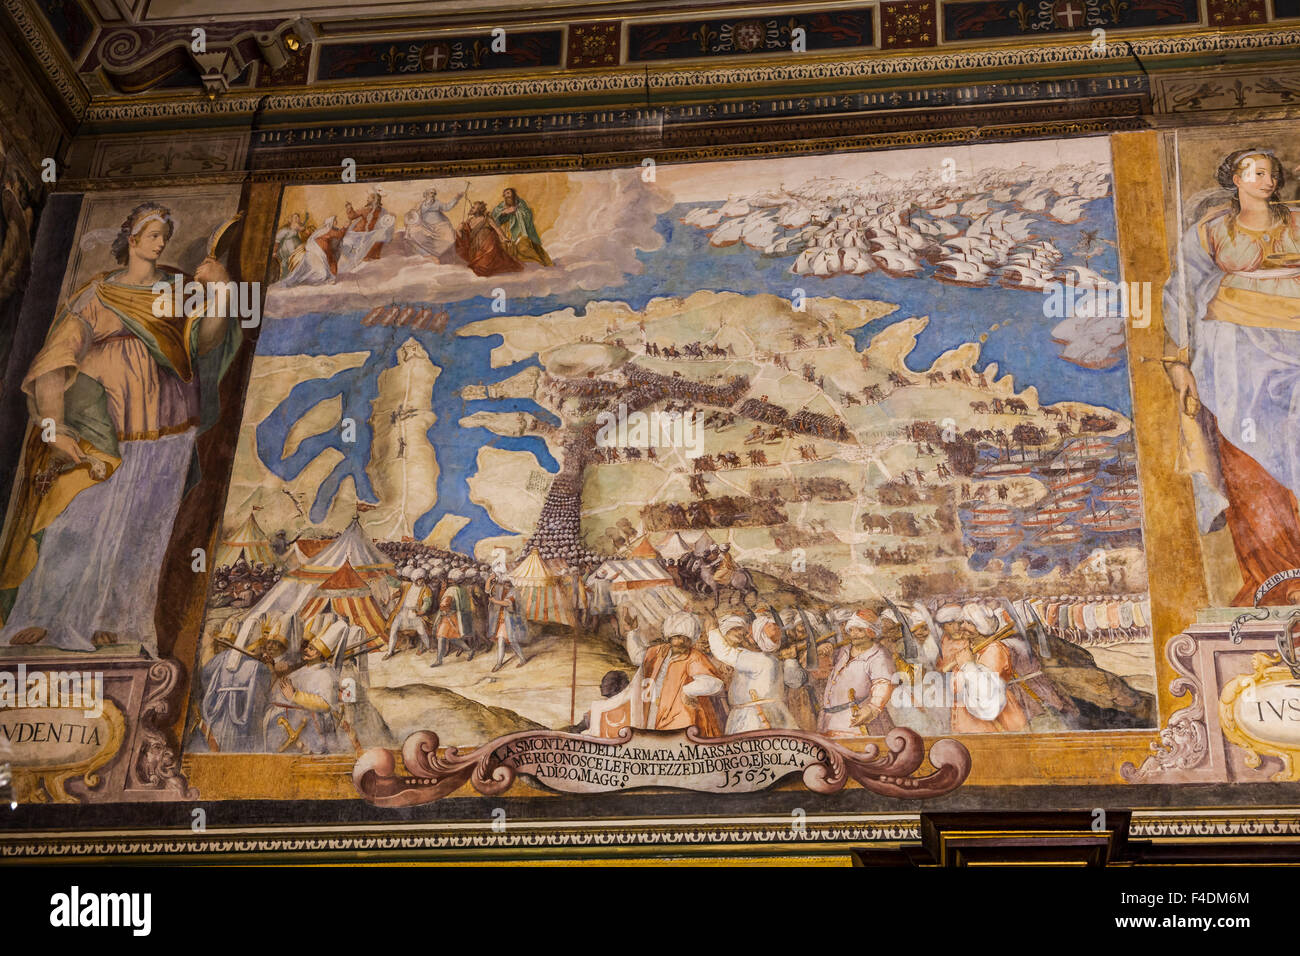 The Grandmasters Palace in Valletta the capital of Malta and listed as UNESCO world heritage, Interior, painting - Stock Image